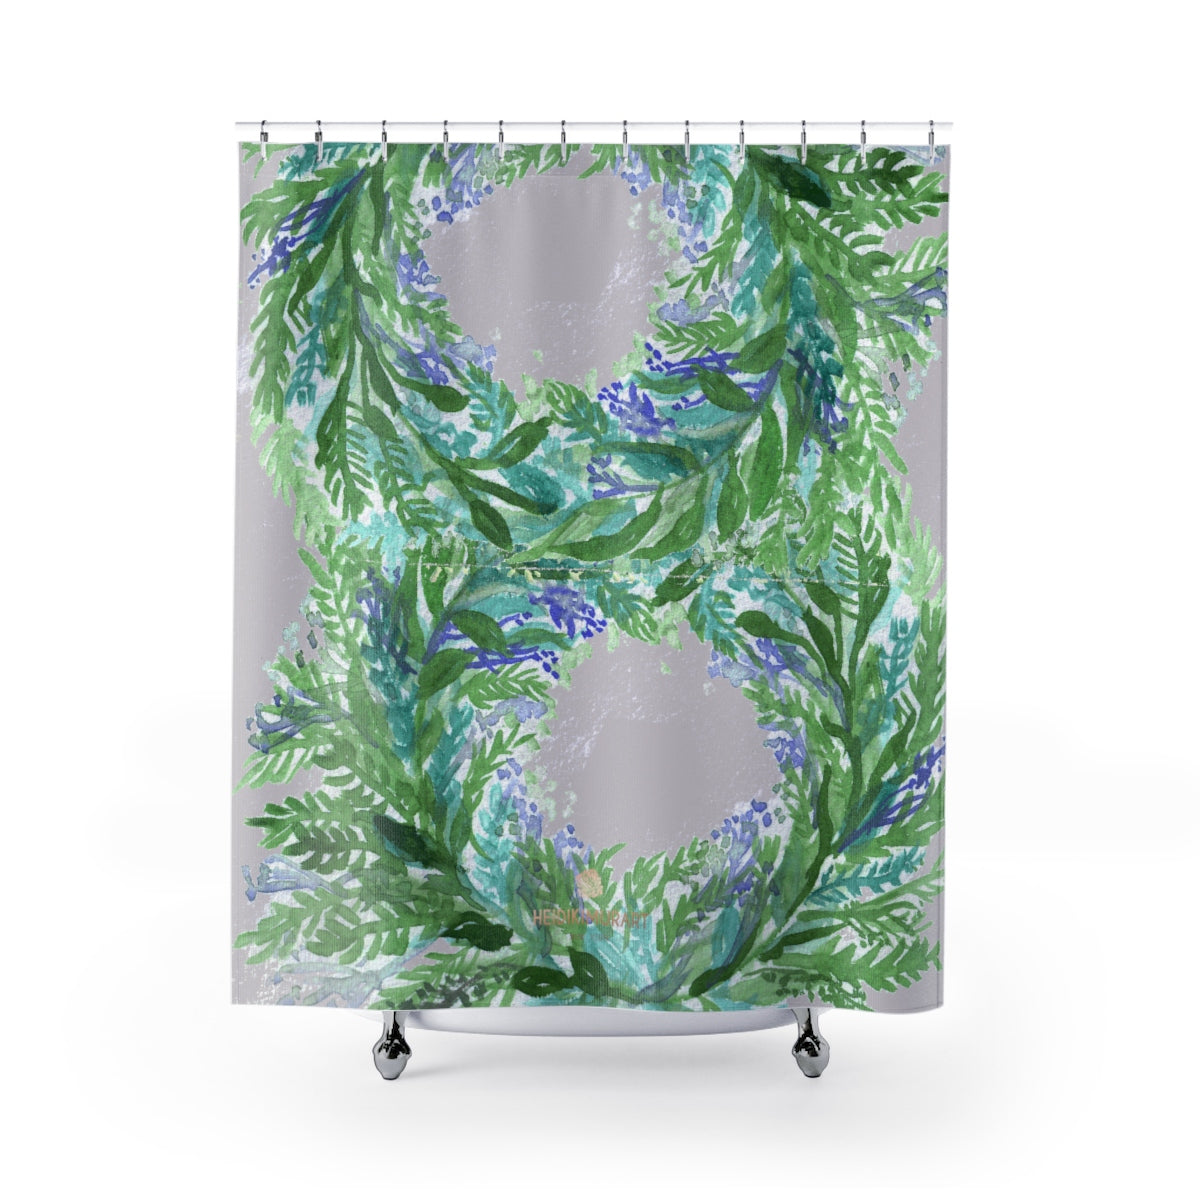 "Light Gray French Lavender Floral Print Polyester Shower Curtains- Printed in USA-Shower Curtain-71"" x 74""-Heidi Kimura Art LLC Light Gray Lavender Shower Curtains, Light Gray Cute Pastel Purple French Lavender Floral Print - Printed in USA, Large 100% Polyester 71x74 inches Shower Curtains"